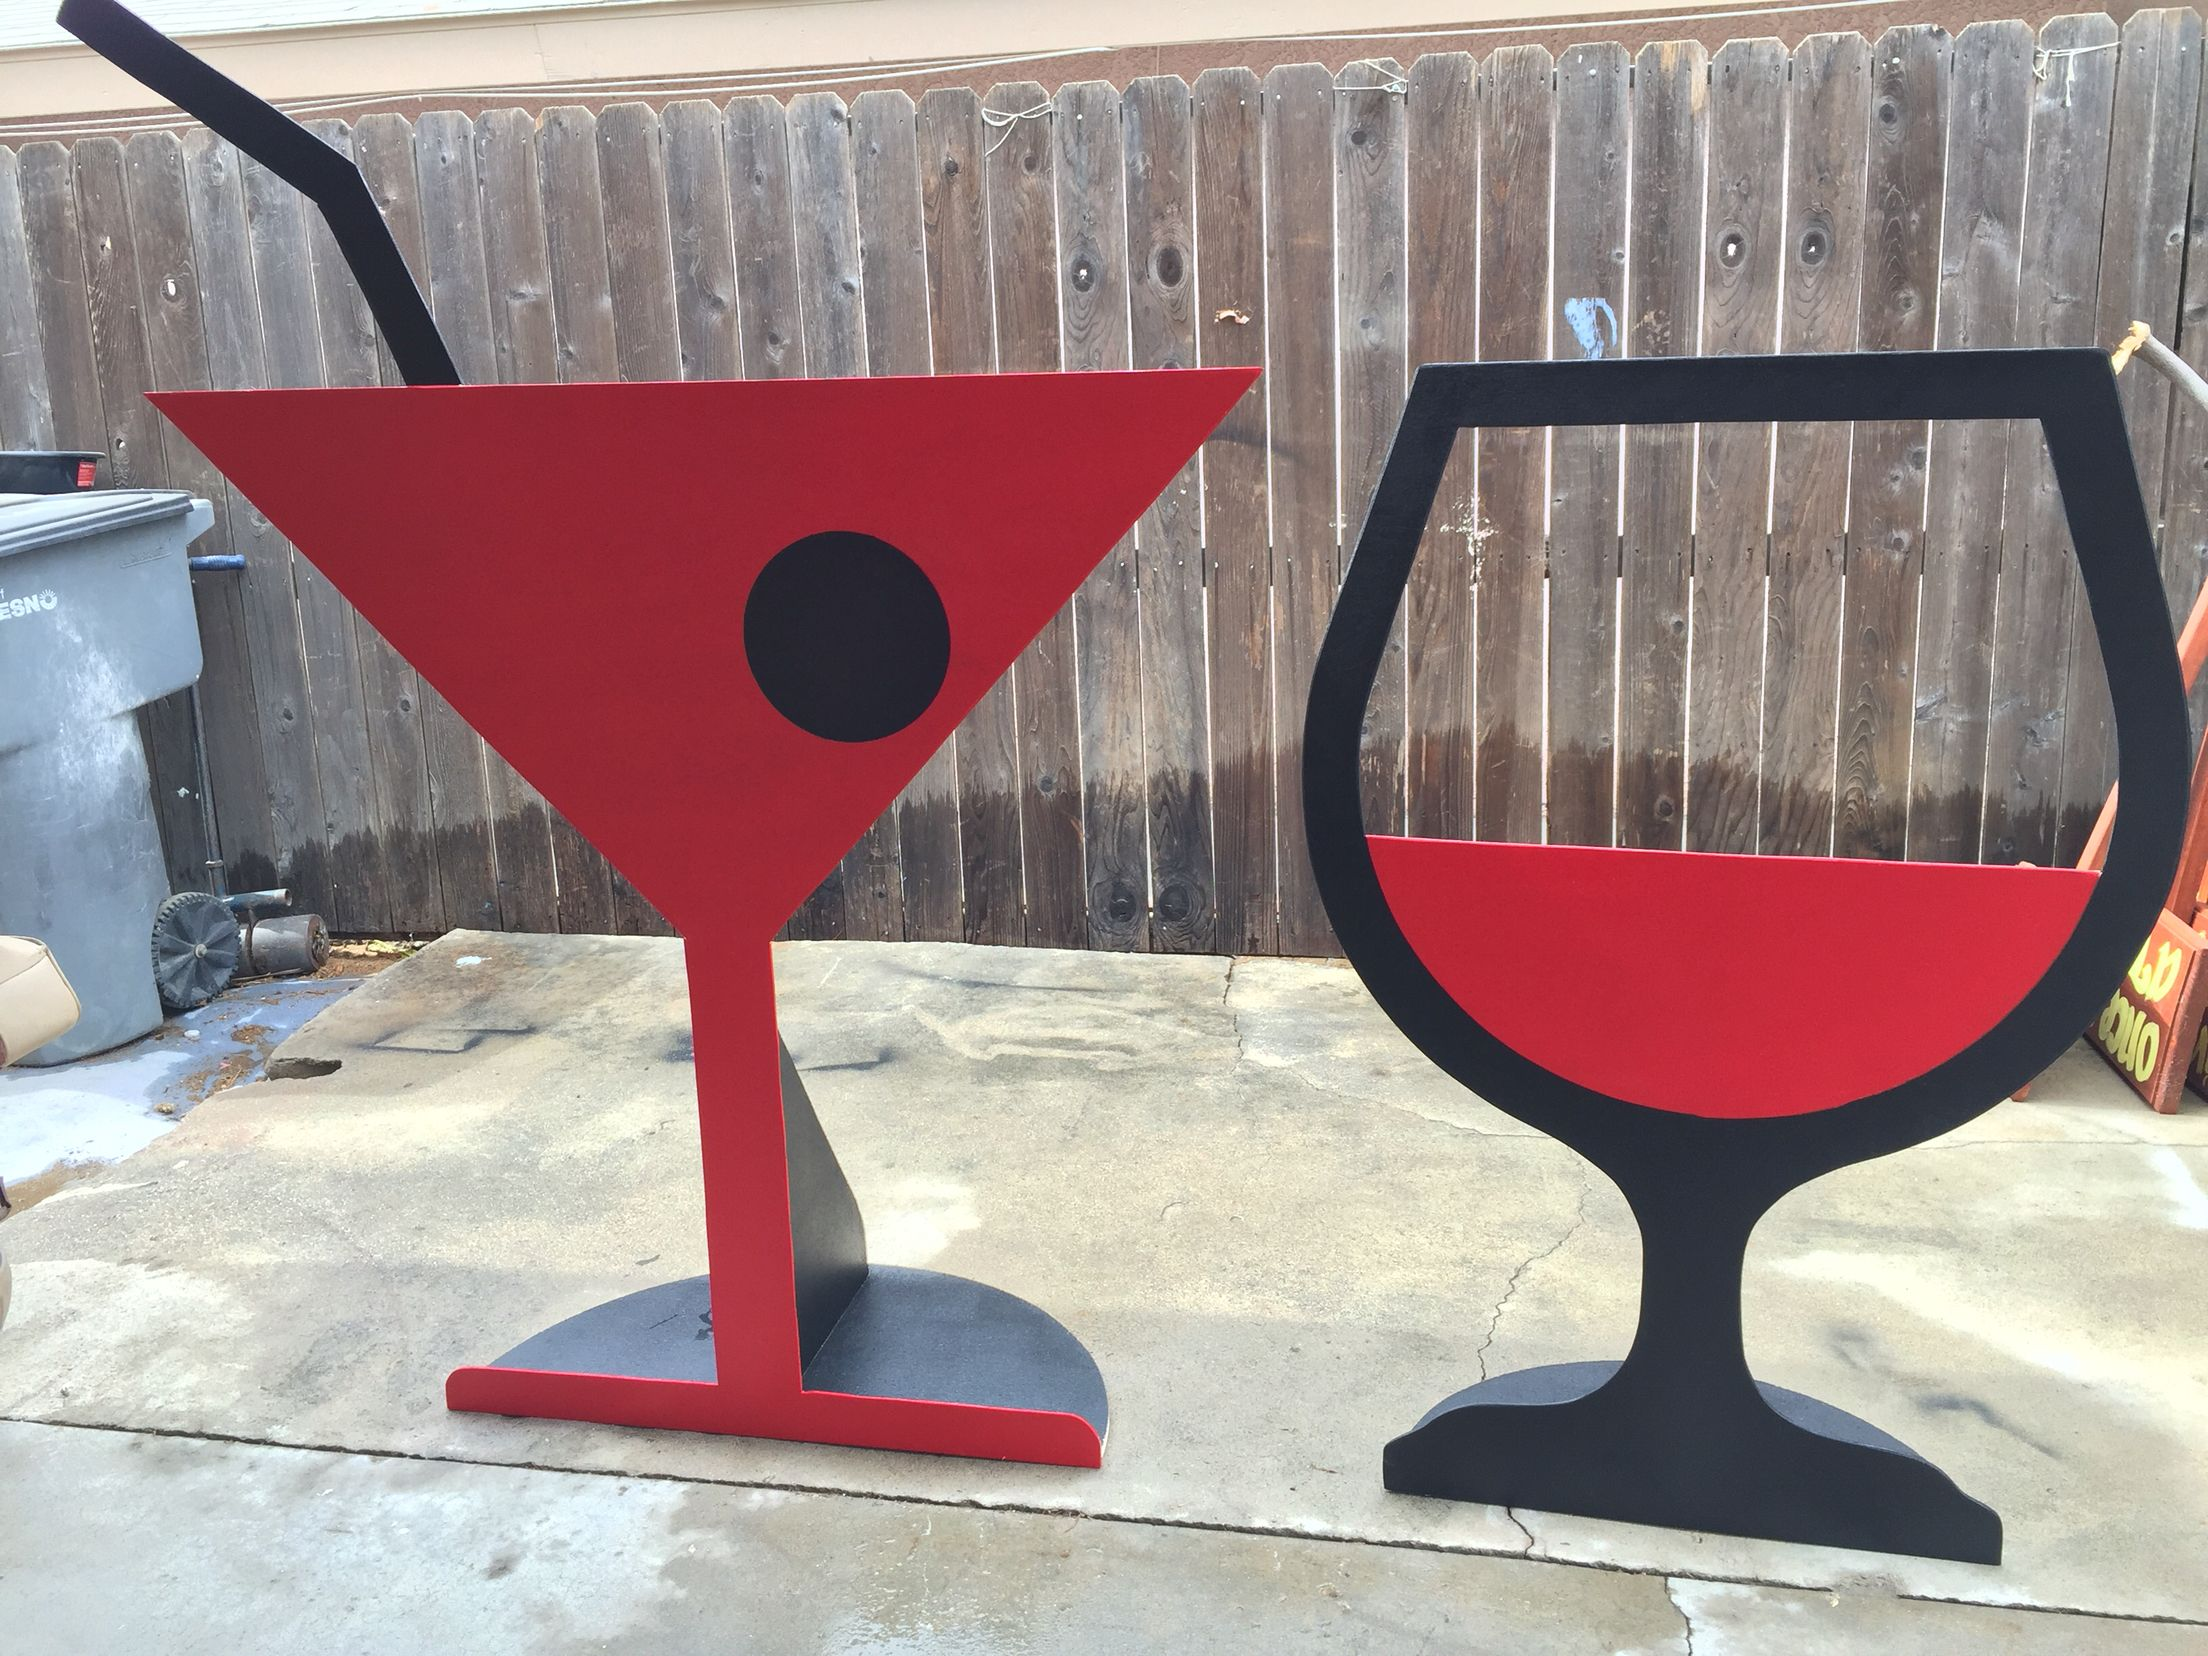 Giant Bar Glasses Wine Glass Photo Booth Prop Giant Glass Of Wine Selfie Frame Photo Booth Frame Prop Photobooth Frame Diy Wine Birthday Ideas